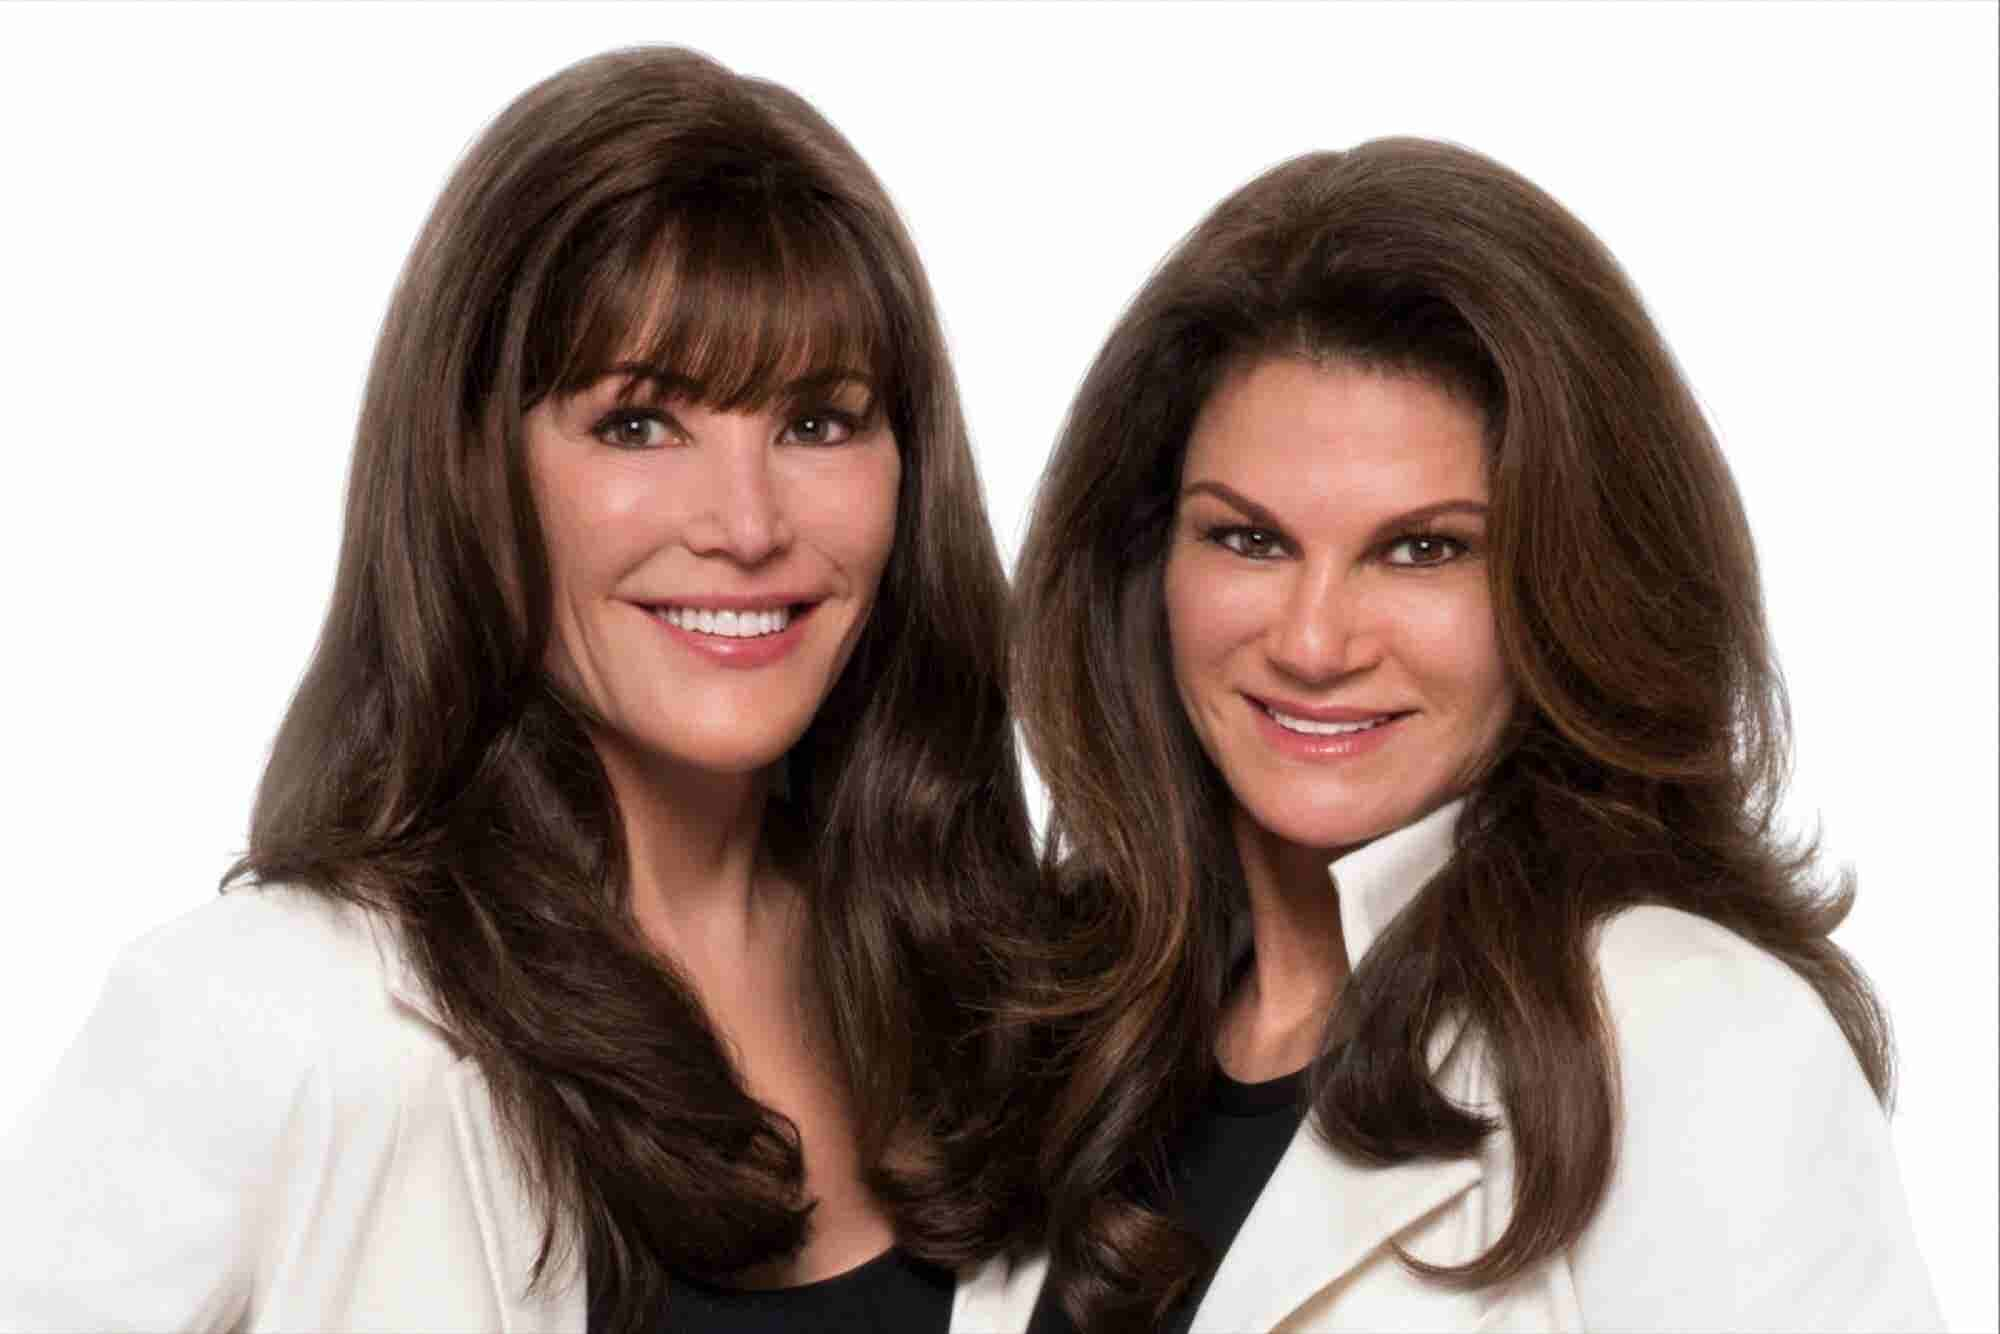 These 2 Simple Ideas Helped Rodan + Fields Become a Billion-Dollar Brand